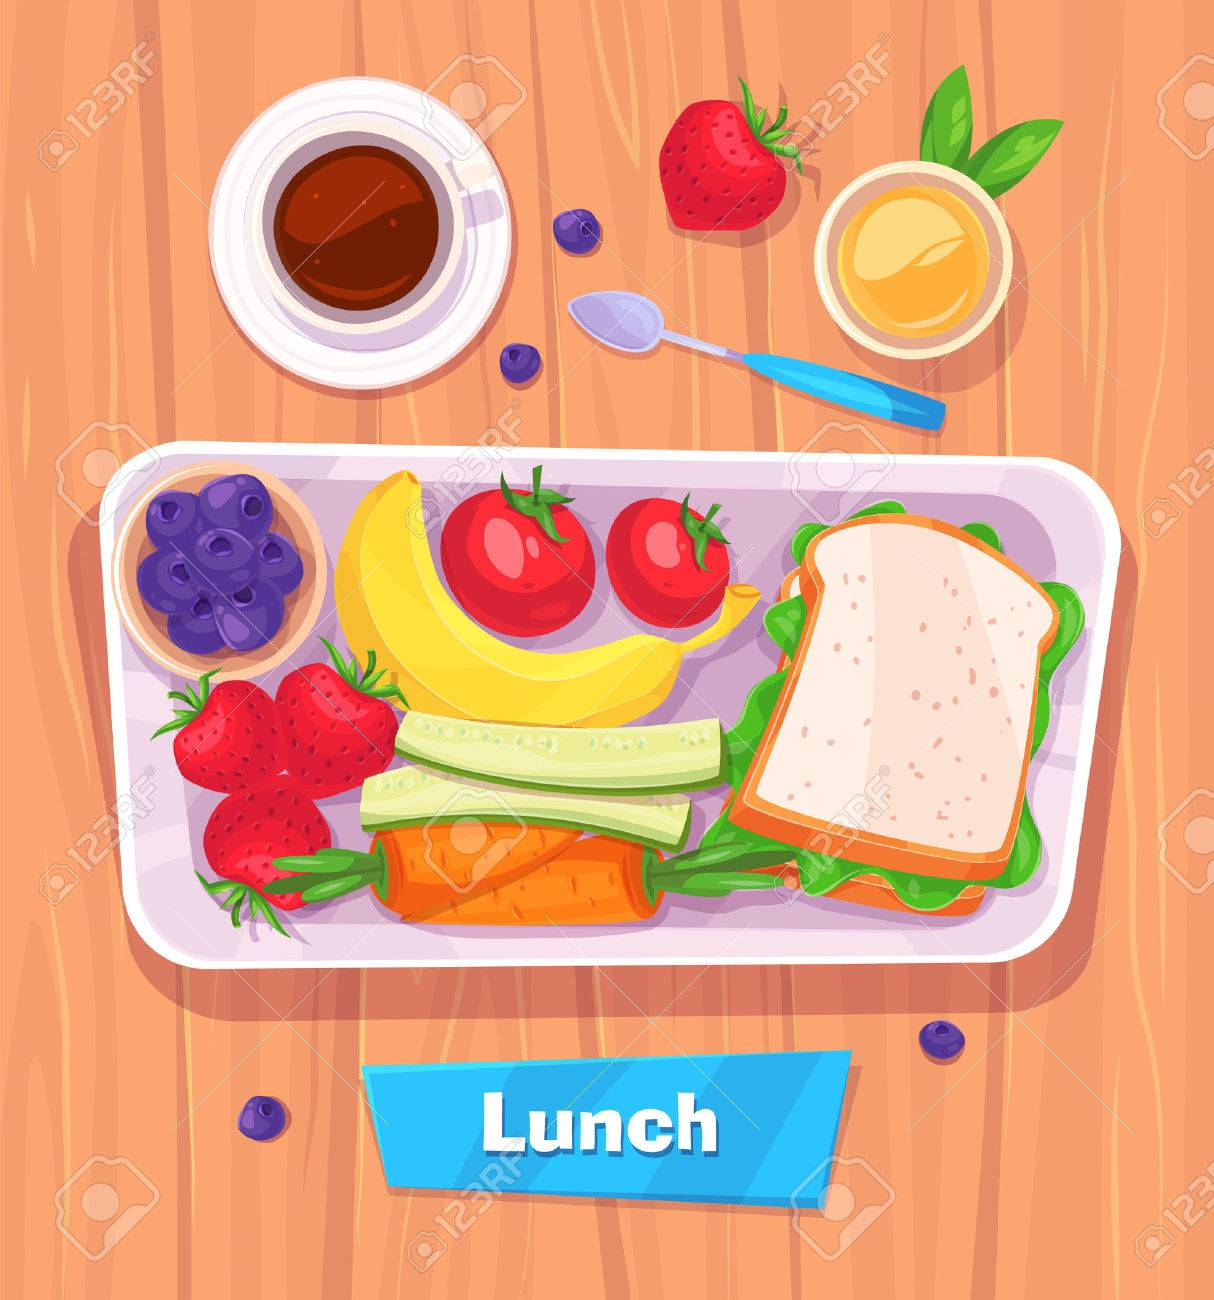 Healthy lunch with banana. berries, sandwich, coffee and juice. View from above on stylish wooden table with copy space. - 50040570